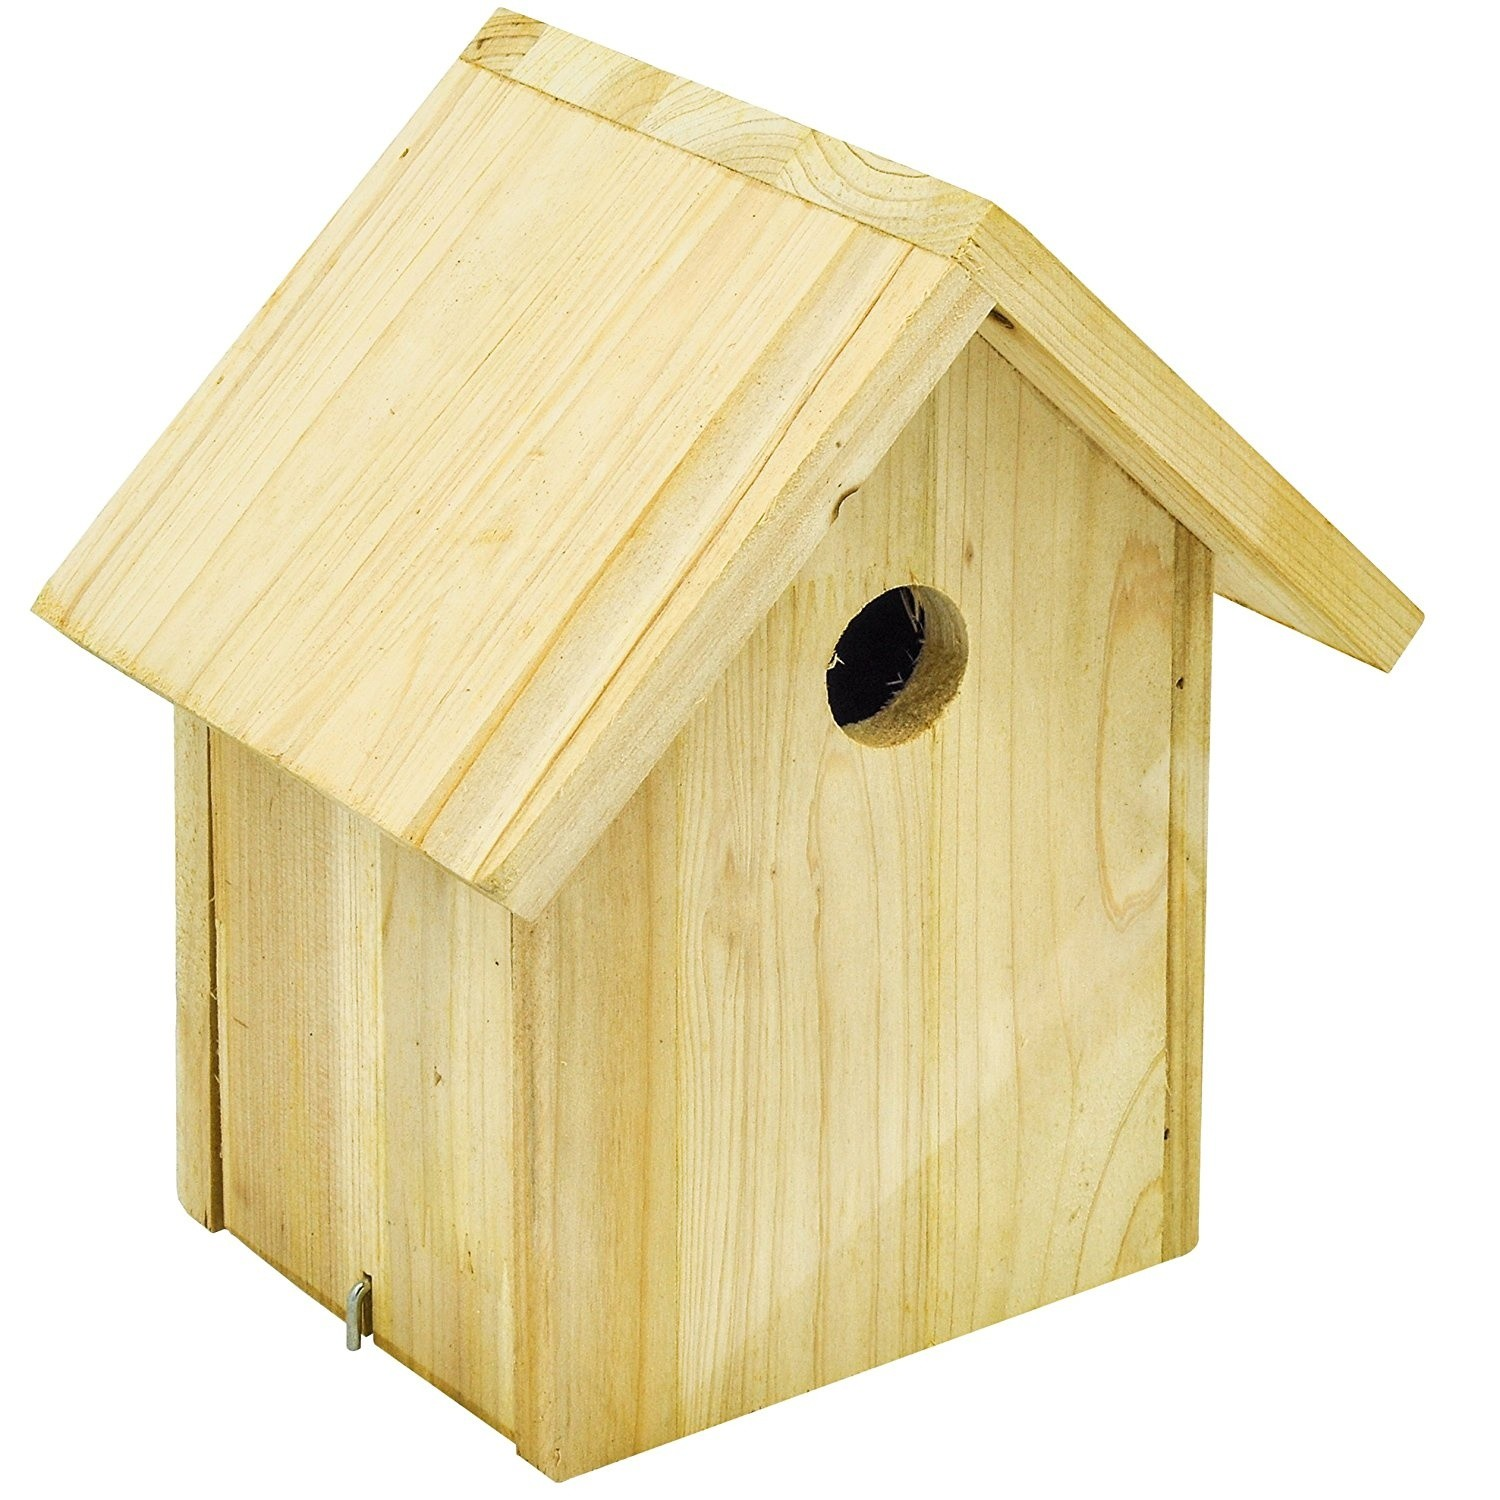 Custom made exquisite quality chinese style wooden bird house, DIY unfinished wooden bird house decor